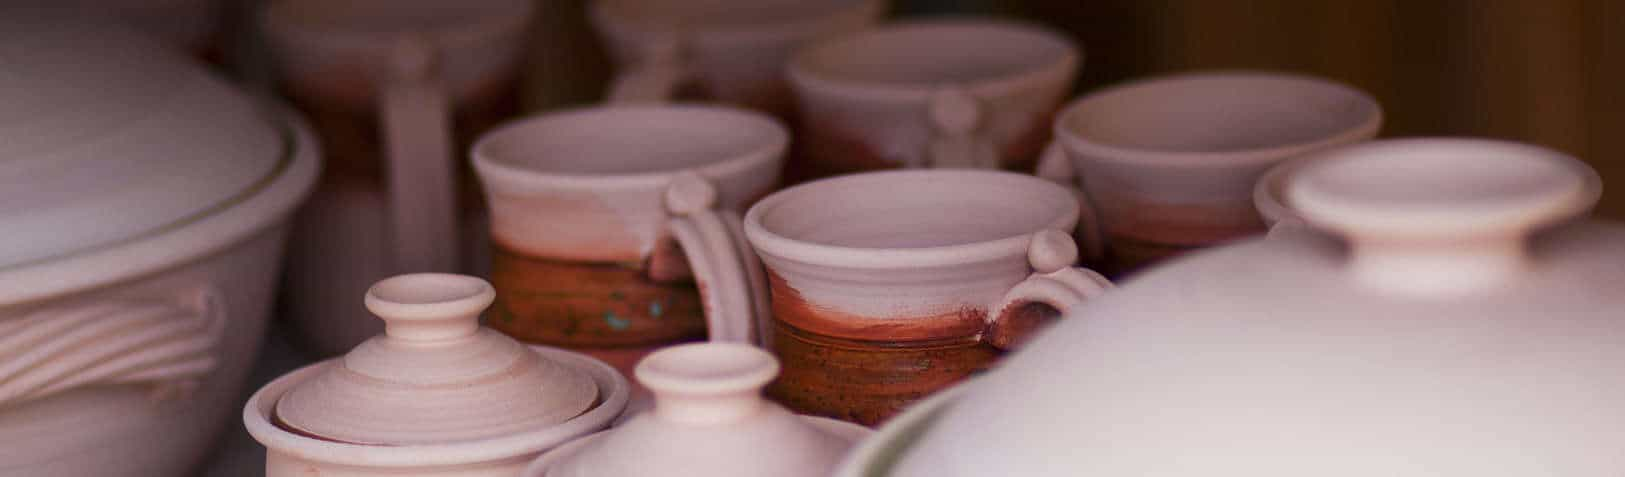 raw-ceramic-clay-pottery